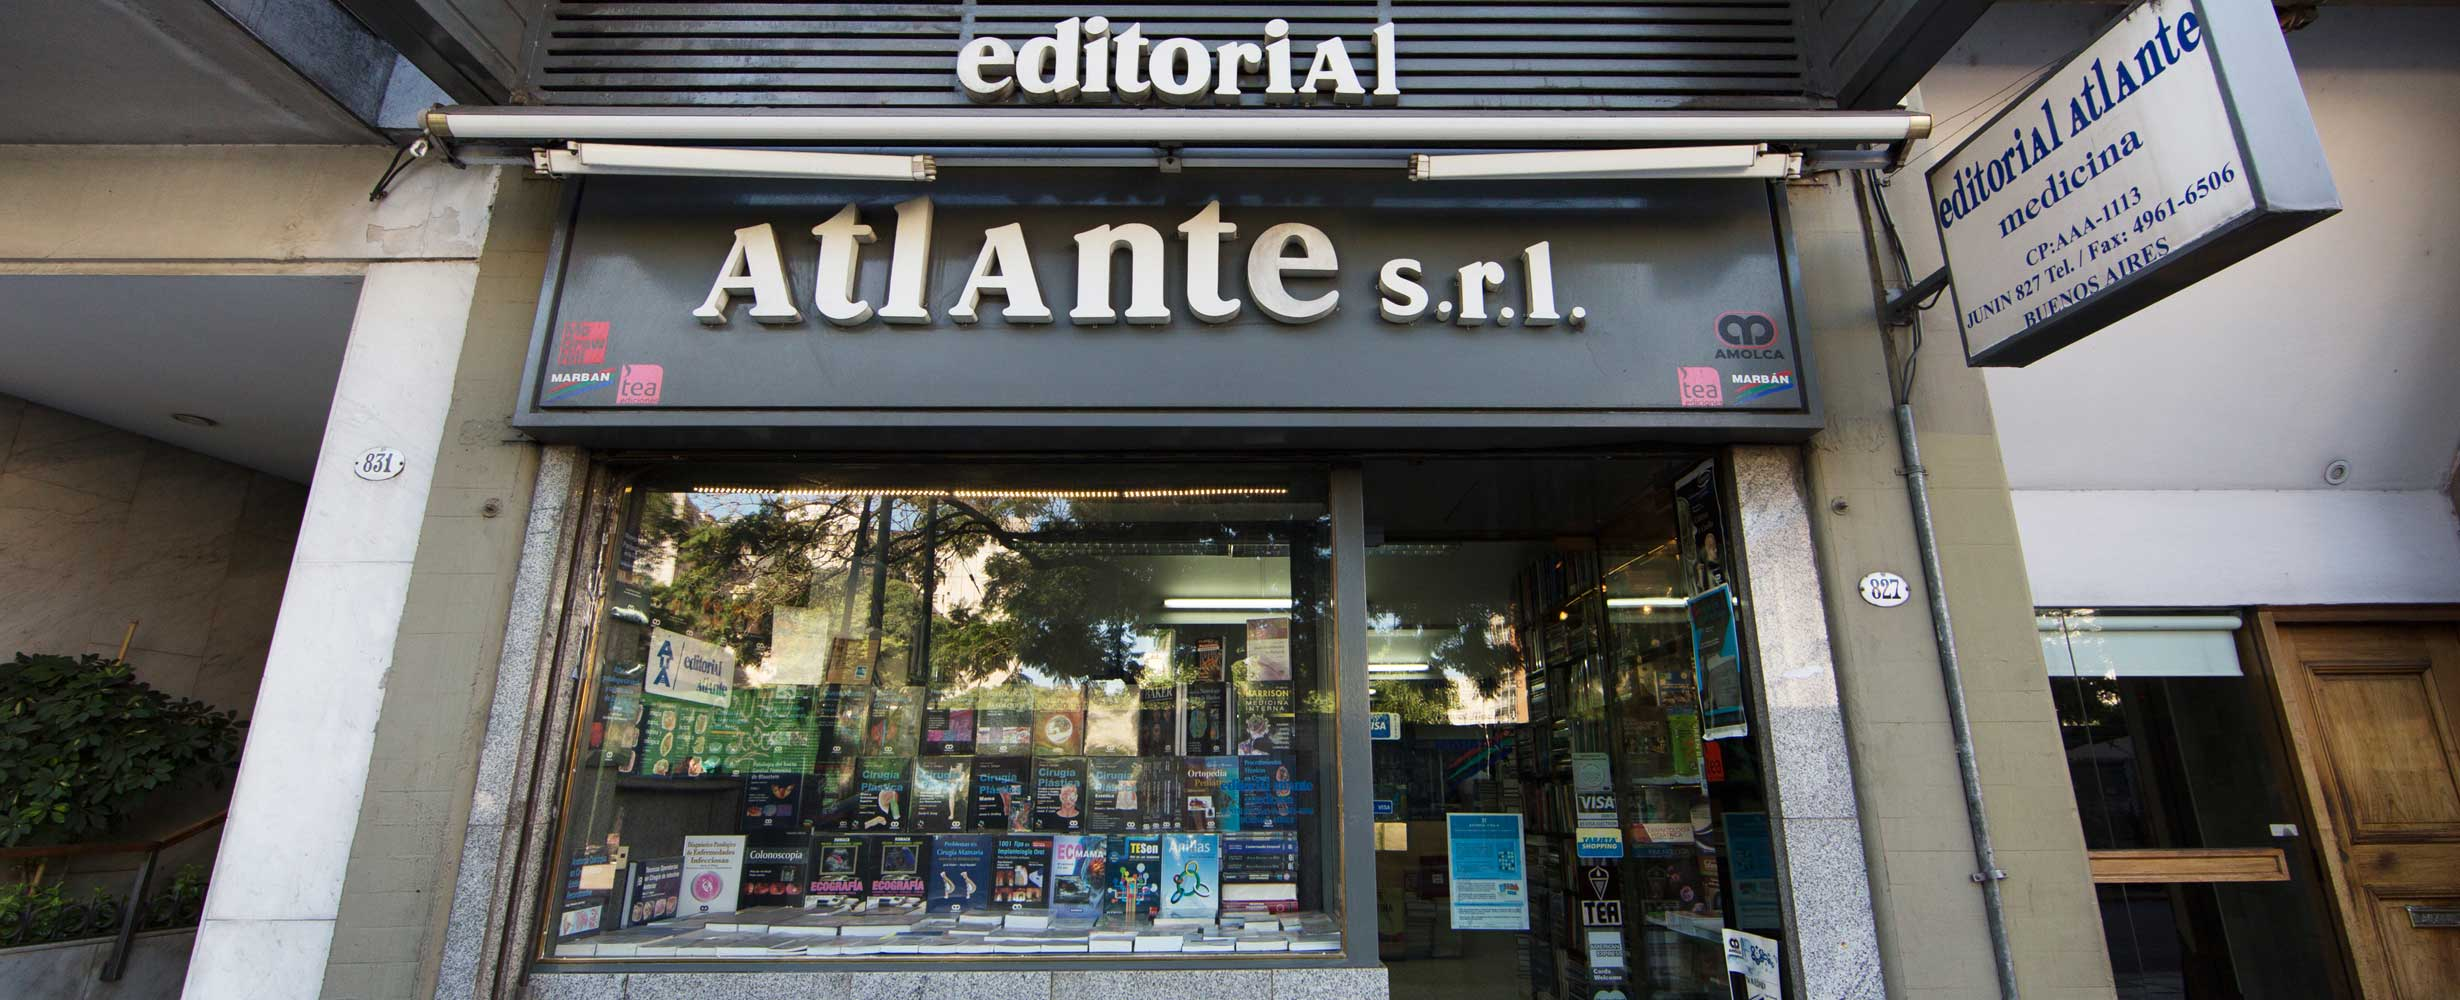 Editorial Atlante - Editorial especializada en ciencias de la salud - Casa Central